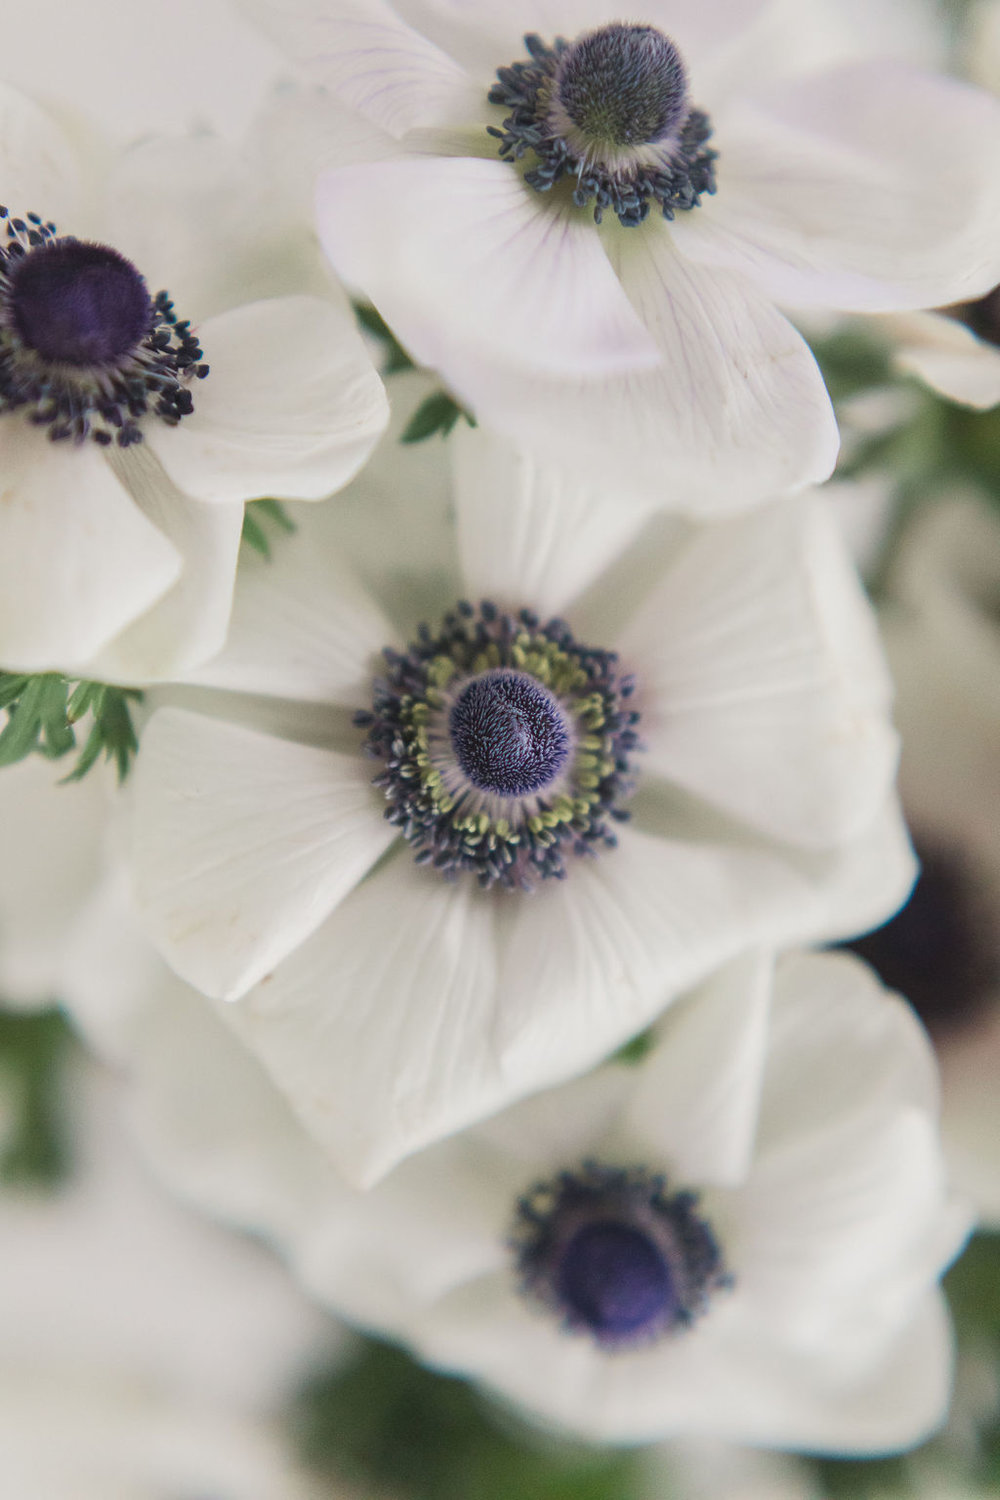 Black and white anemones